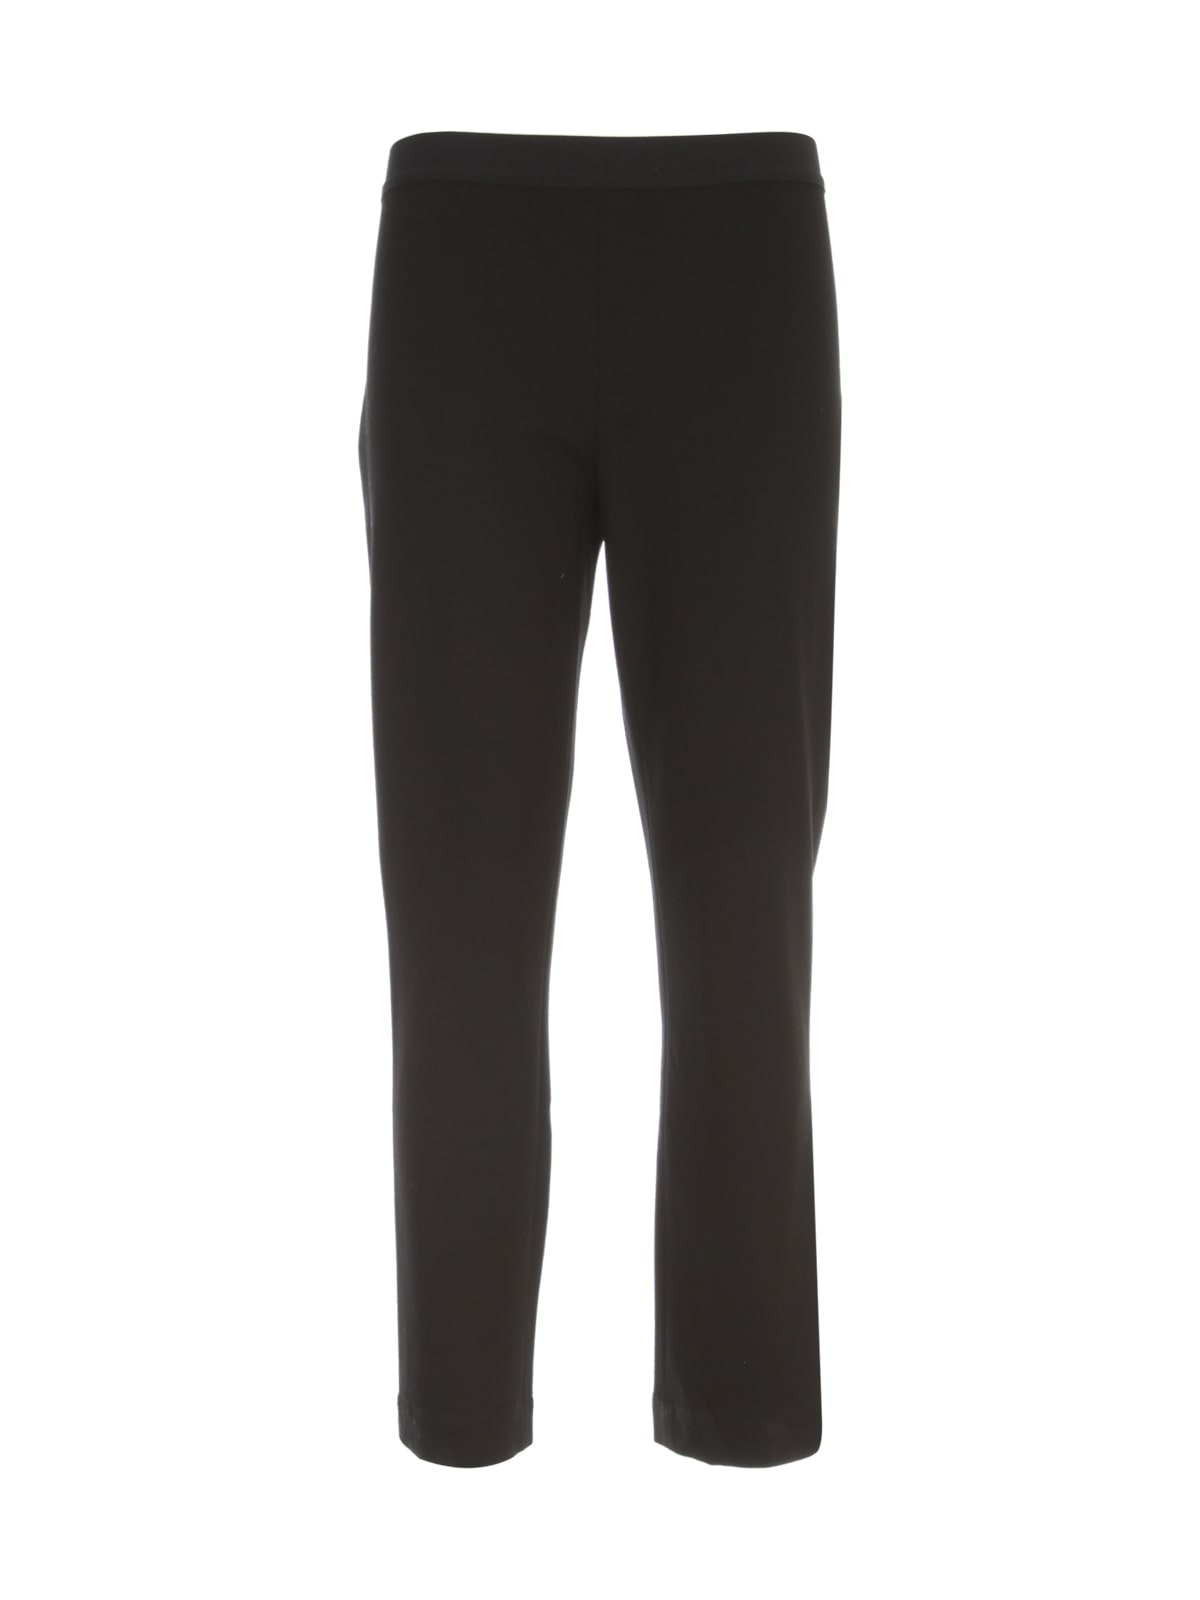 Liviana Conti Pants Leggings Elastic